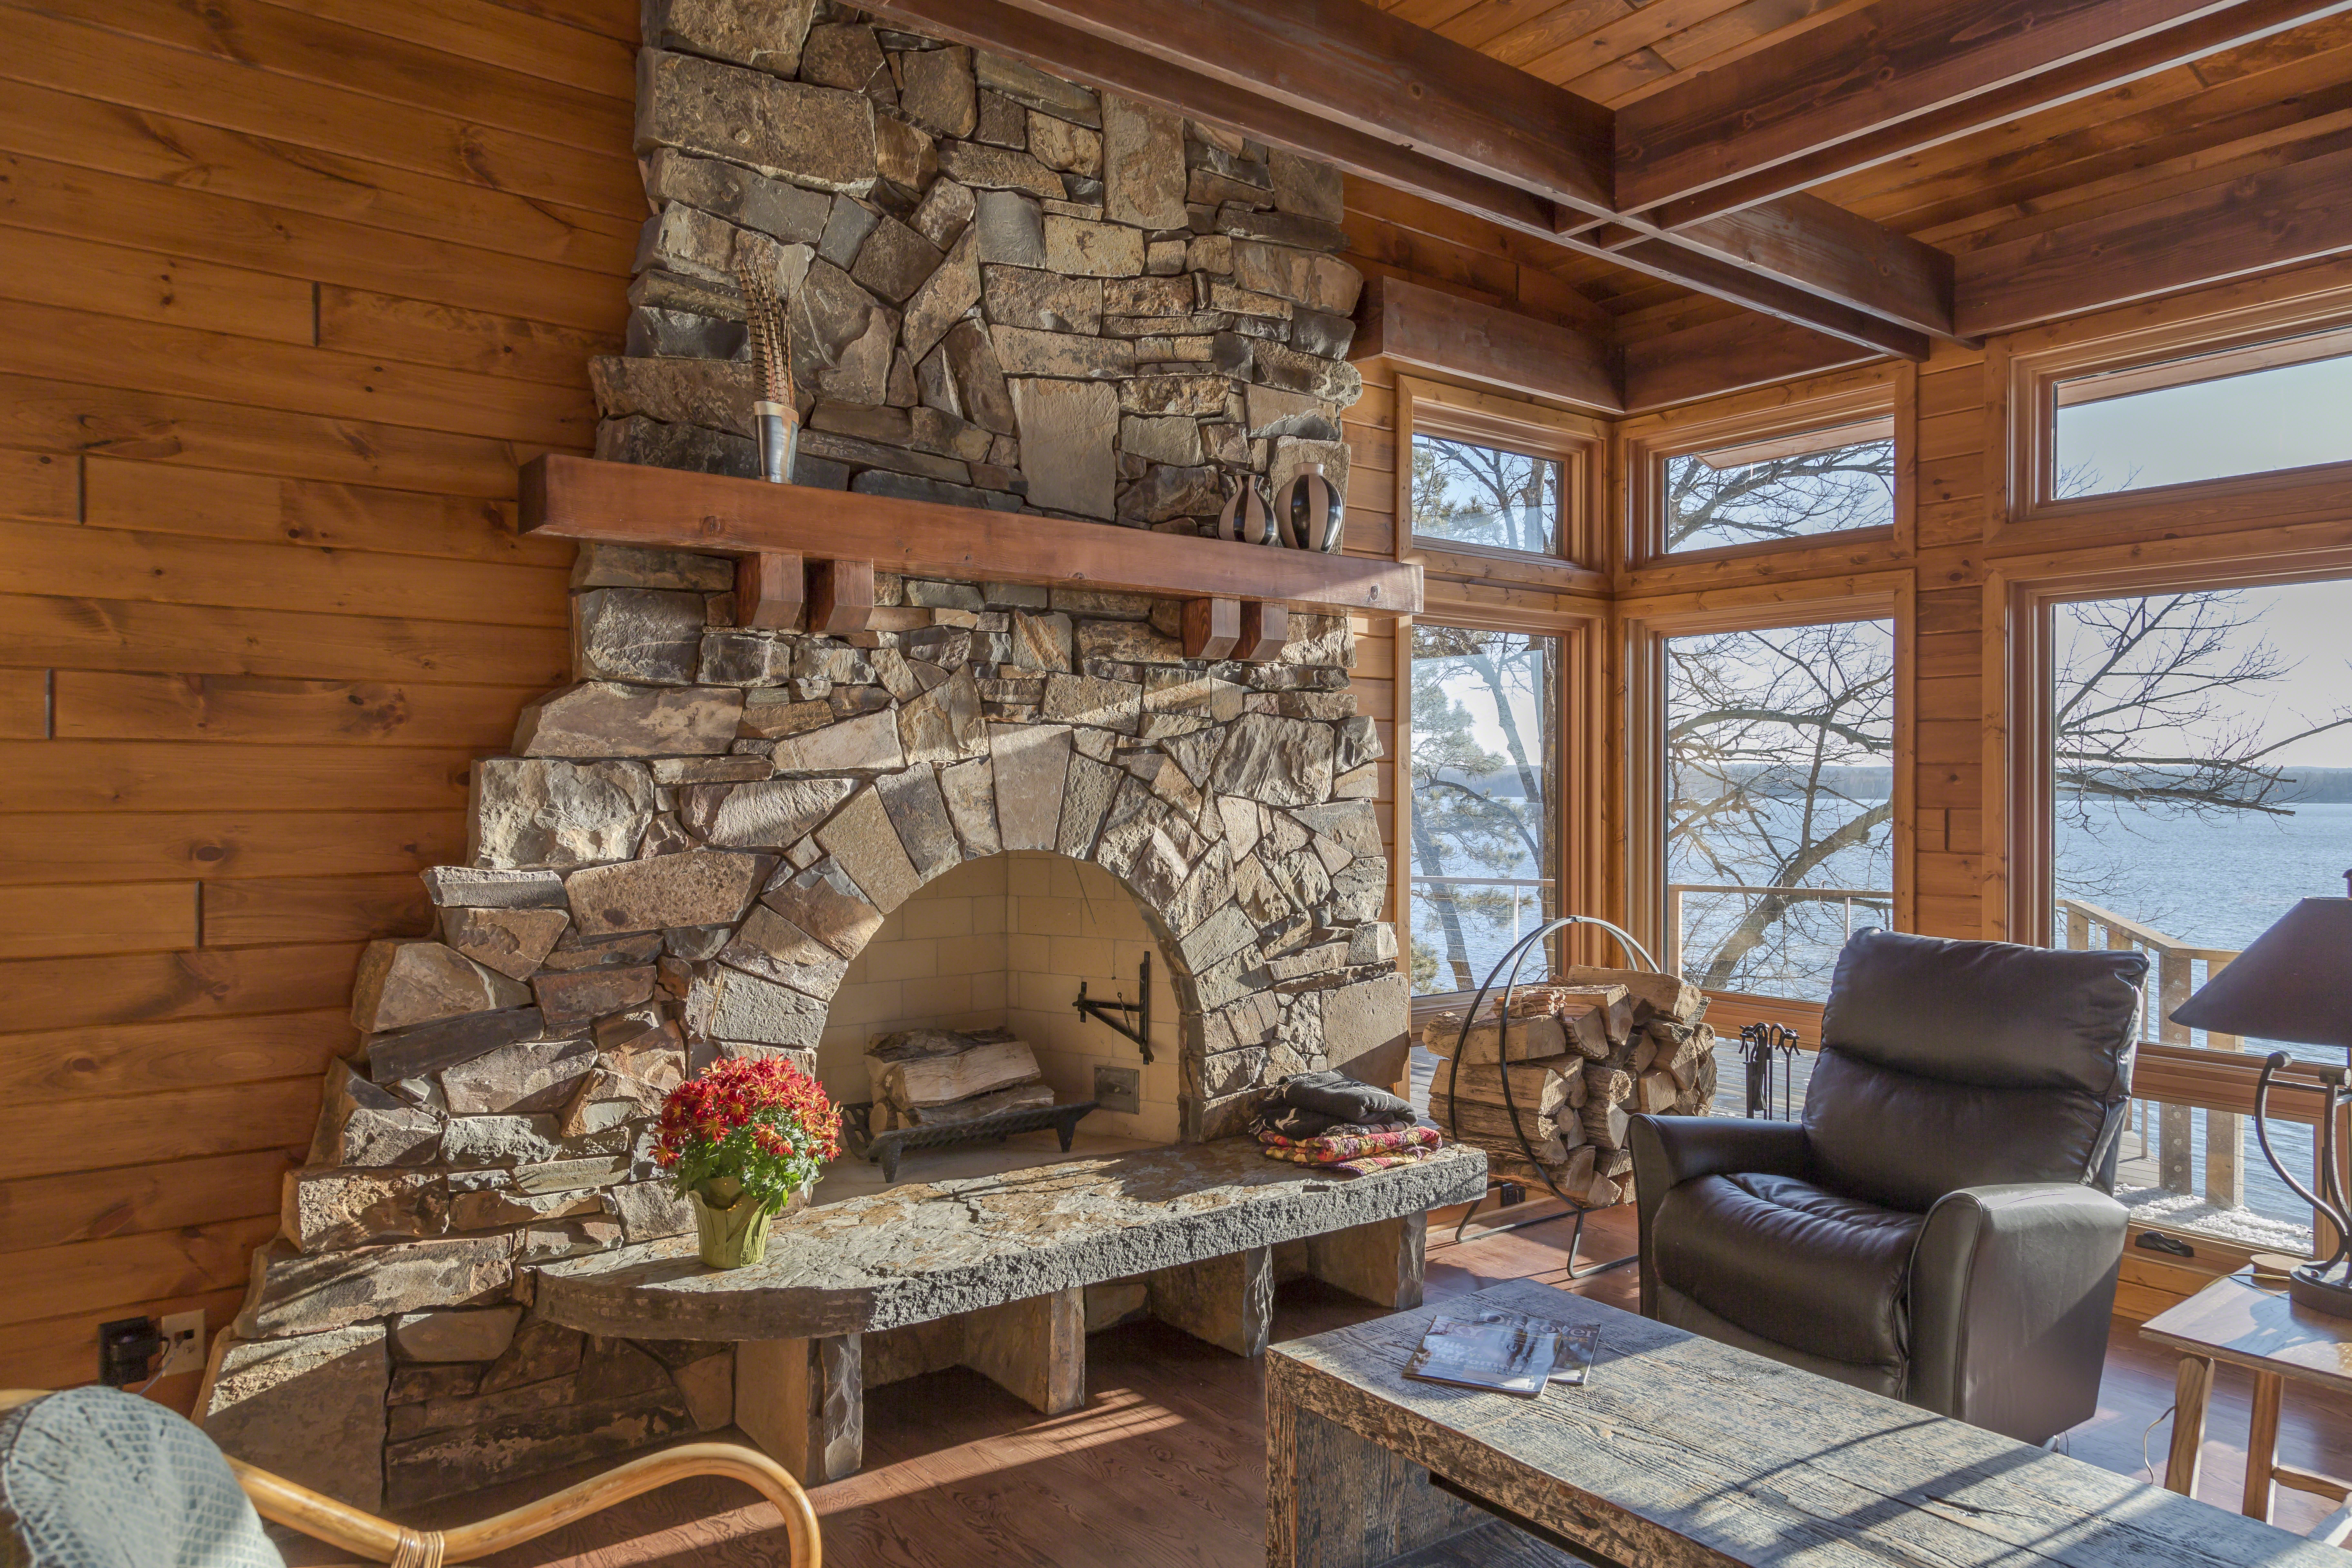 Stone Fireplace Cry of the Loon